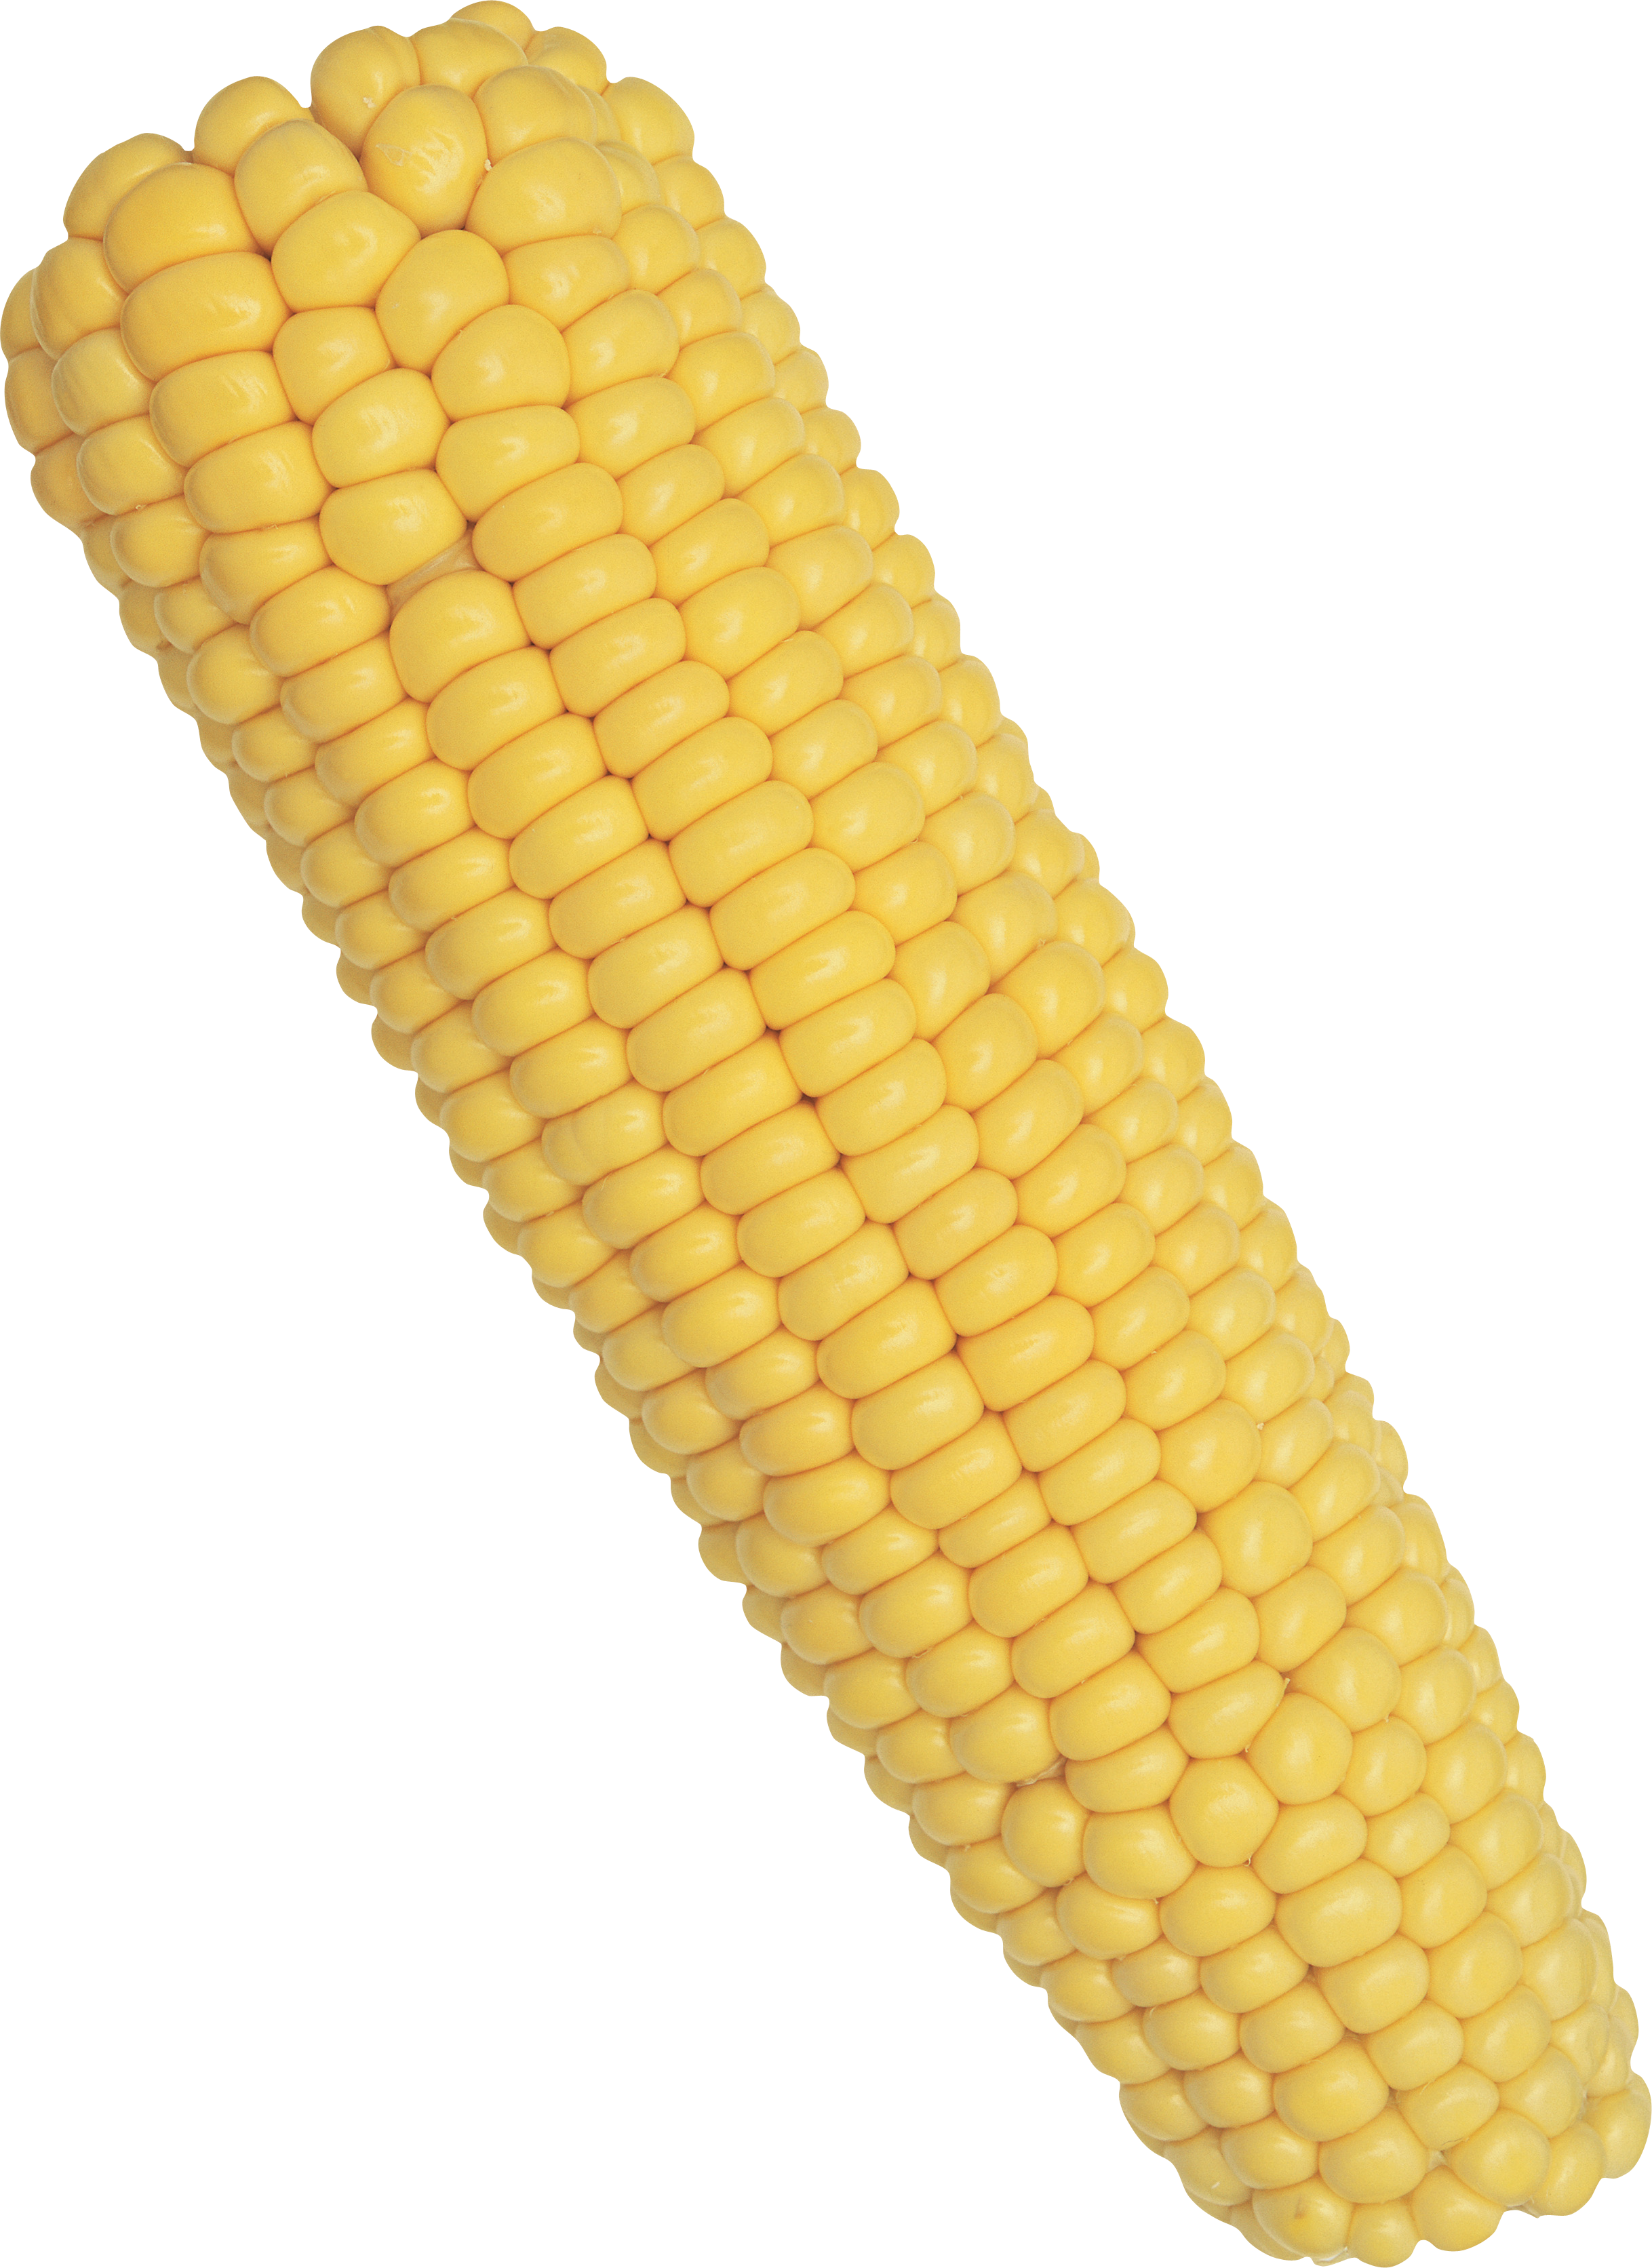 corn on the cob png